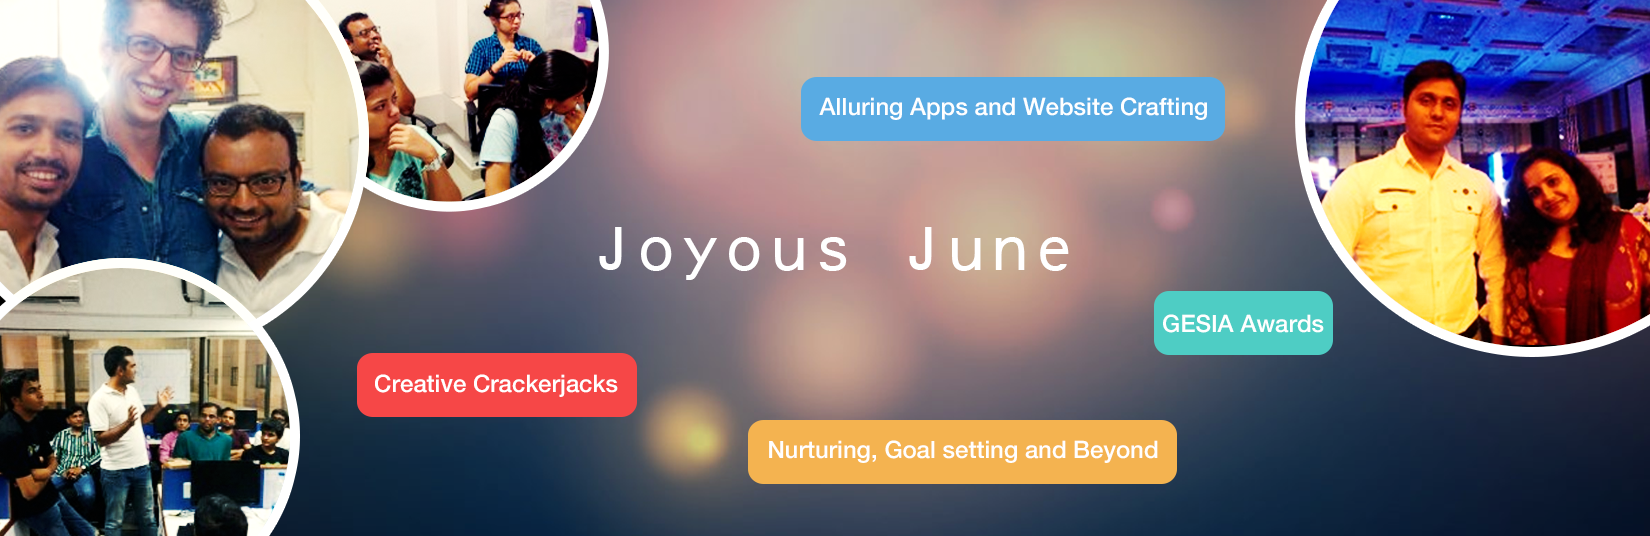 LetsNurture Celebrates Joyous June with A Set of New Goals